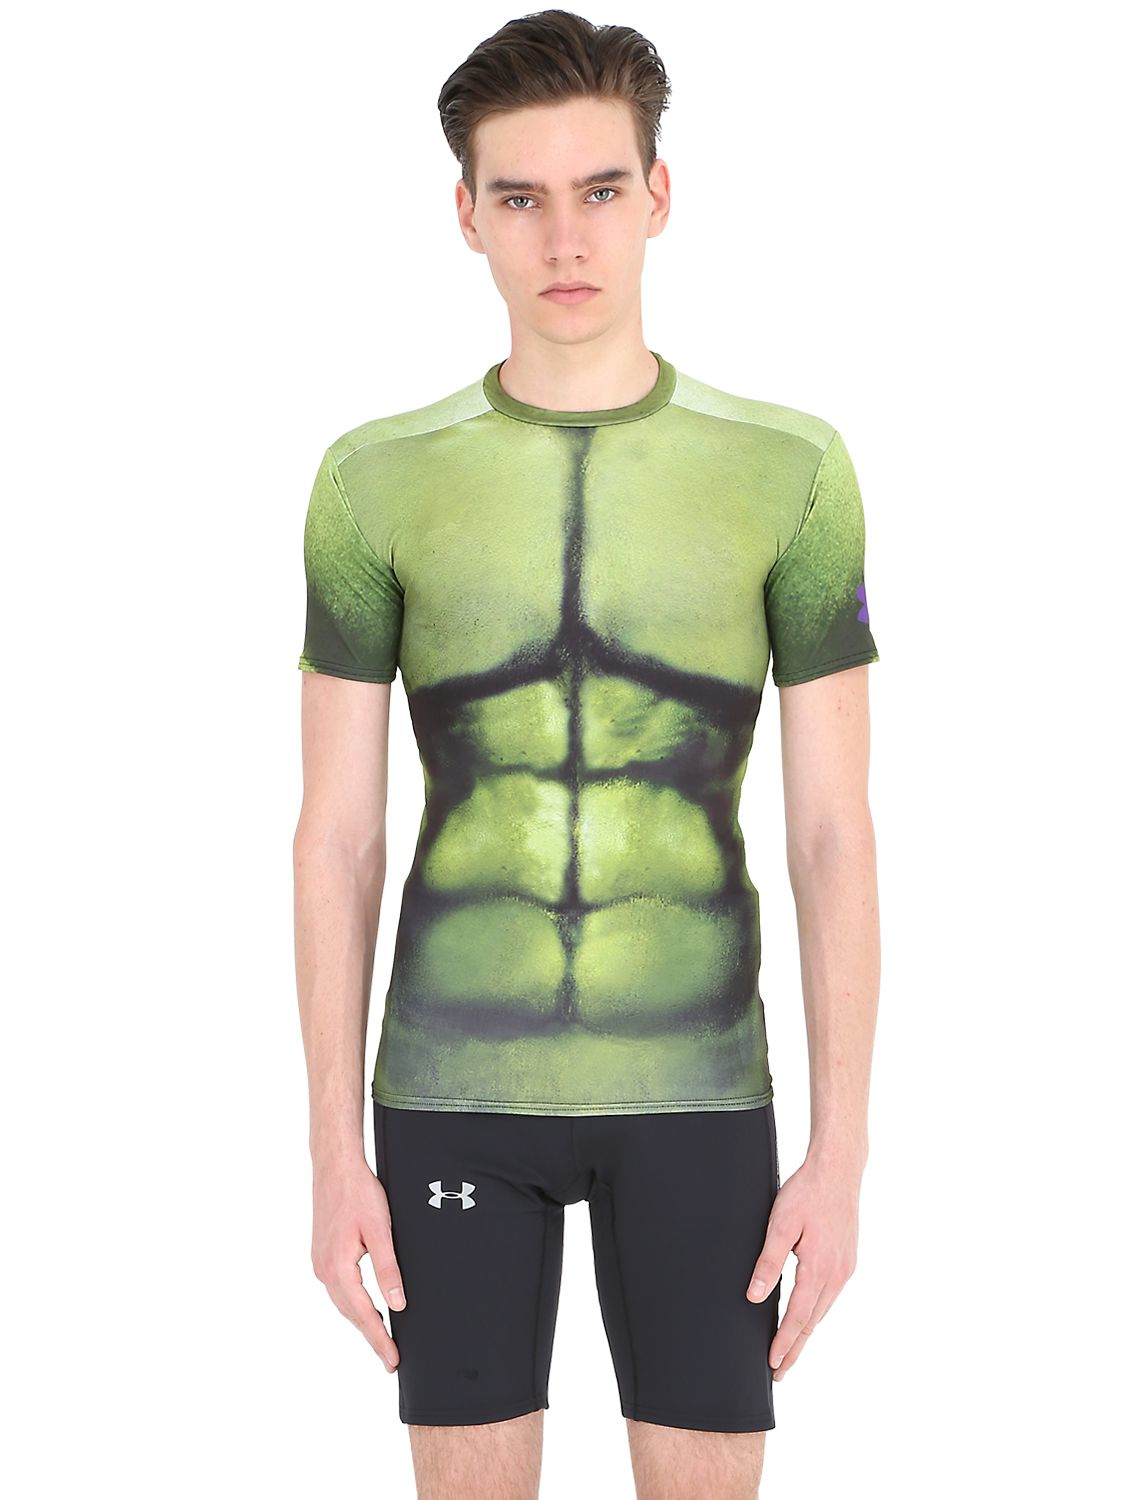 new york utterly stylish new high Under Armour Hulk Compression Base Layer T-shirt in Green ...